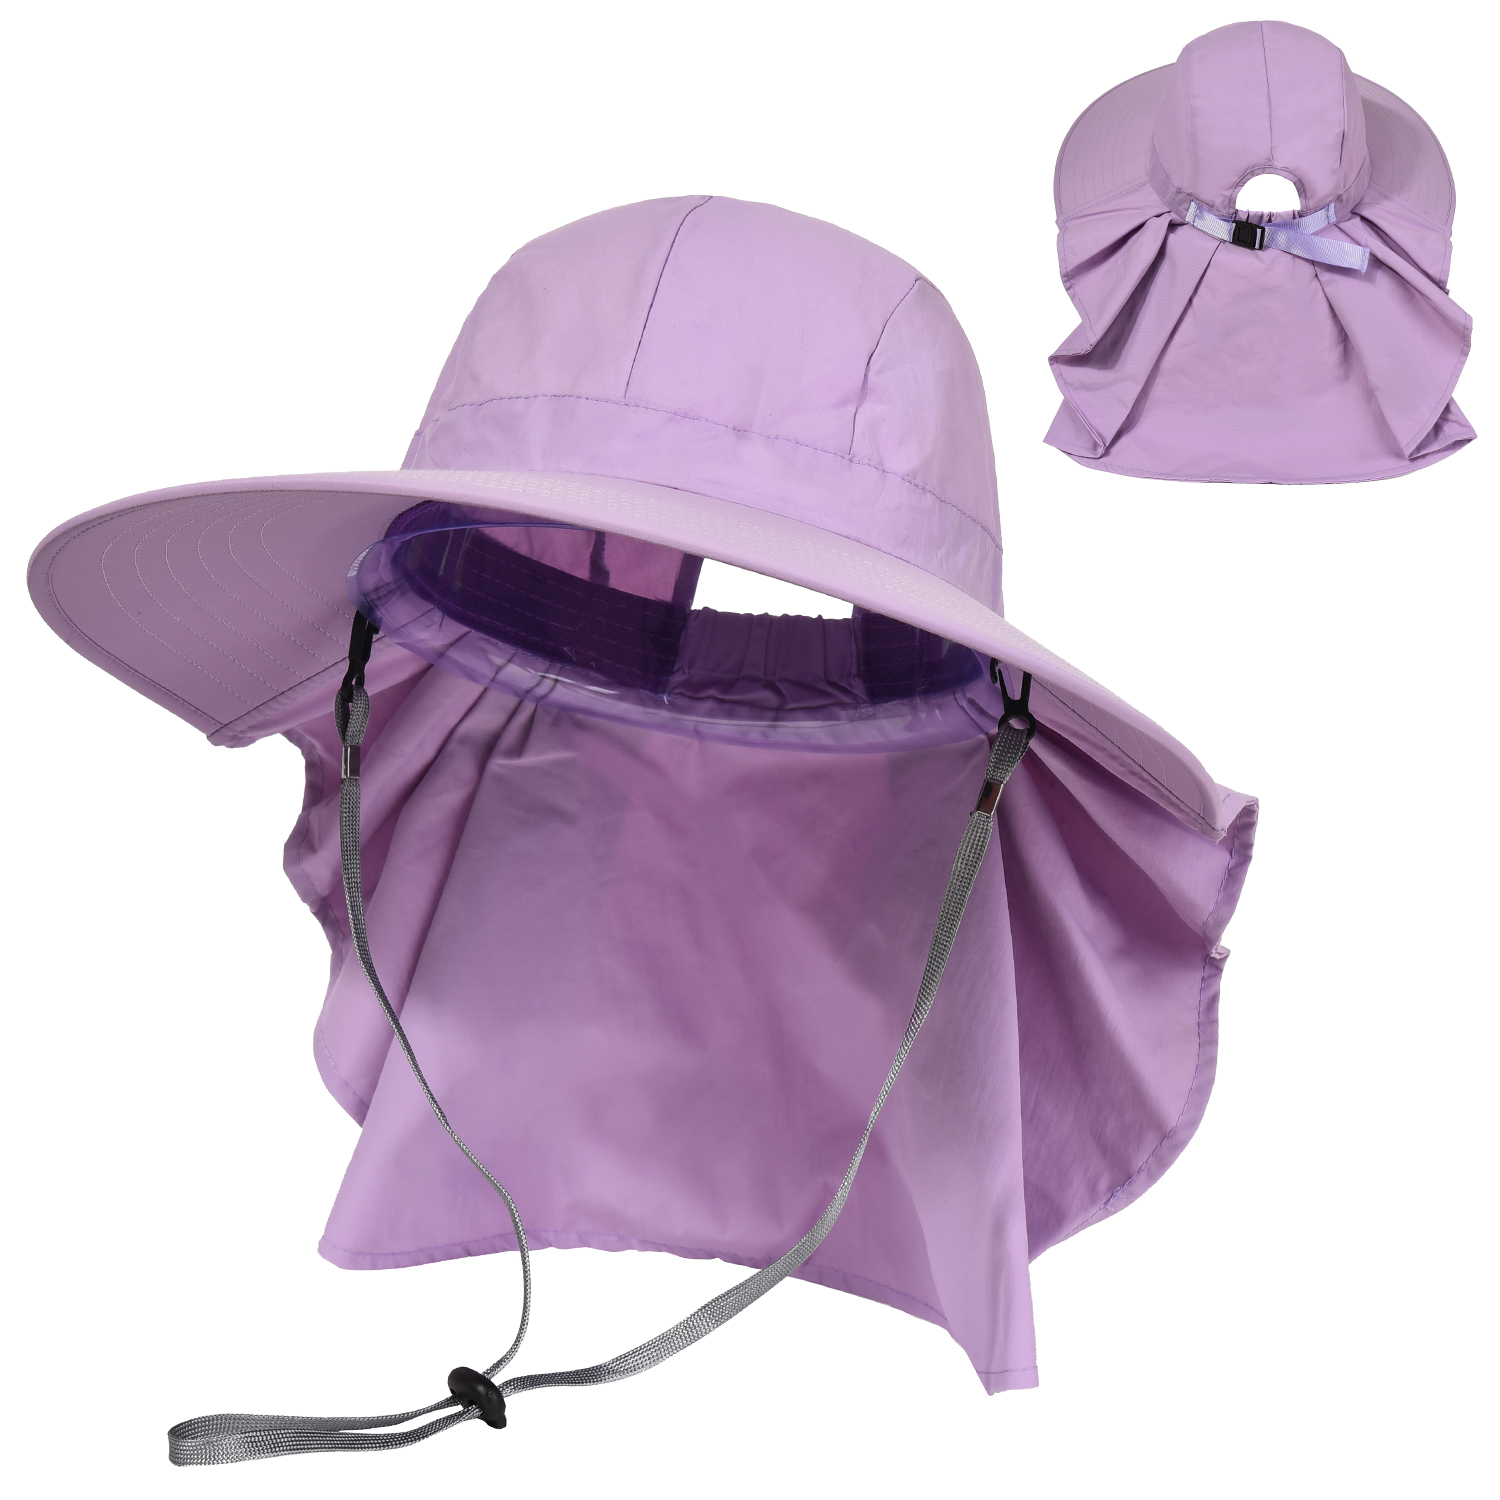 New Baby Girl Chin Strap Princess Floral Straw Cap Sun Hat Wide Brim Travel Cap